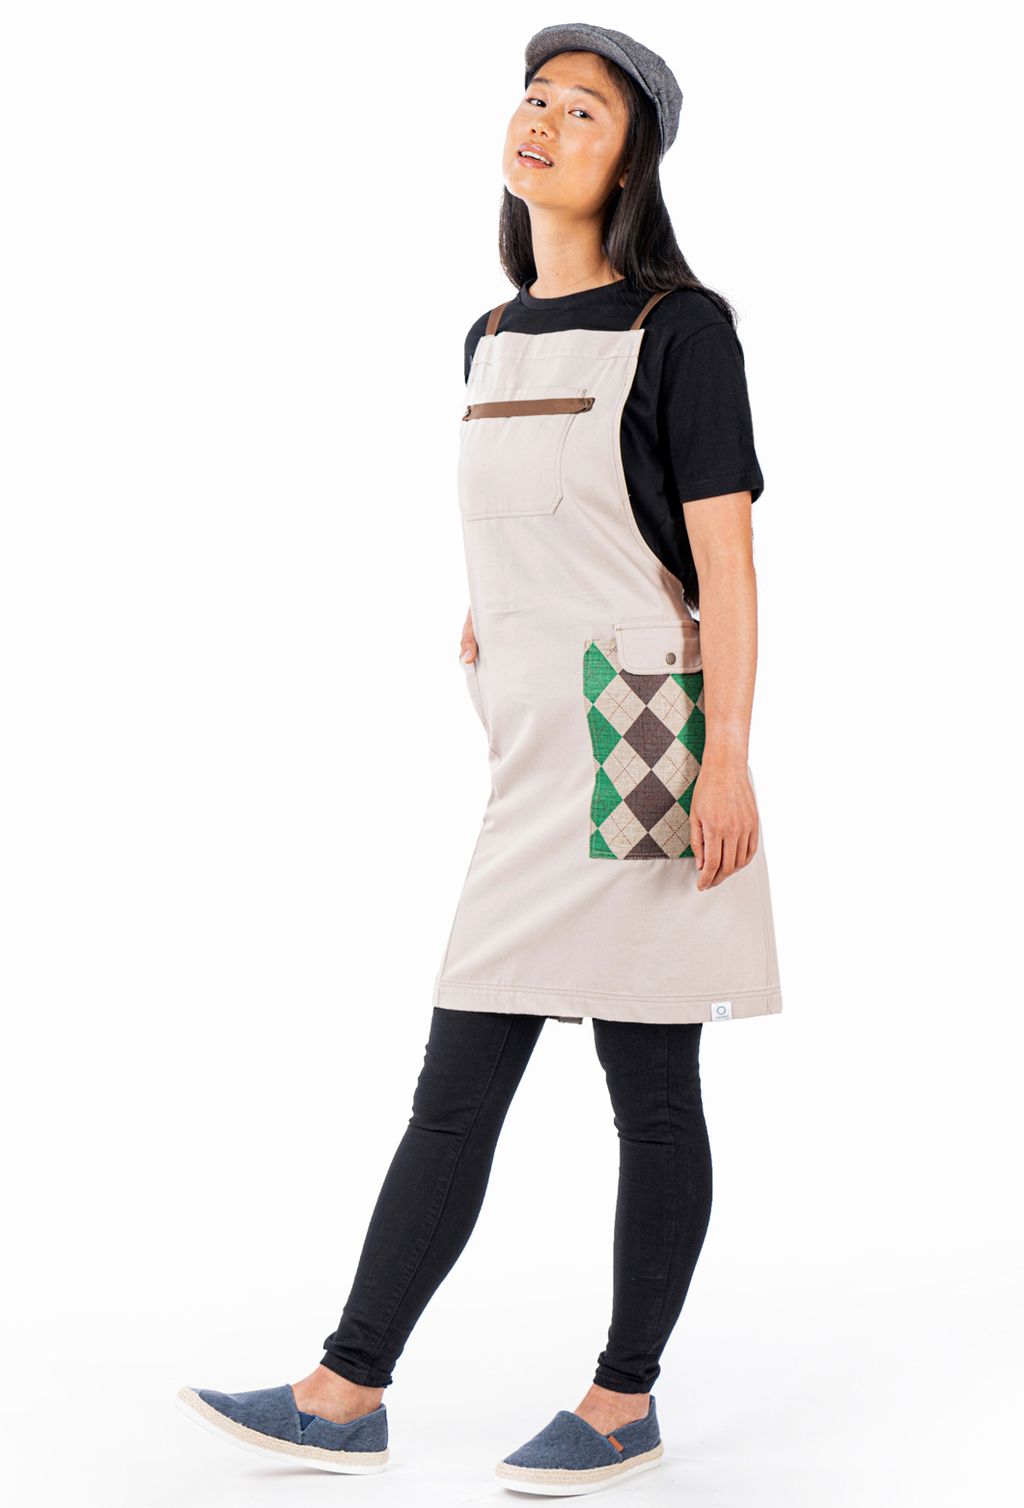 BIB APRON COMBINED POCKET ORGANIC FABRIC